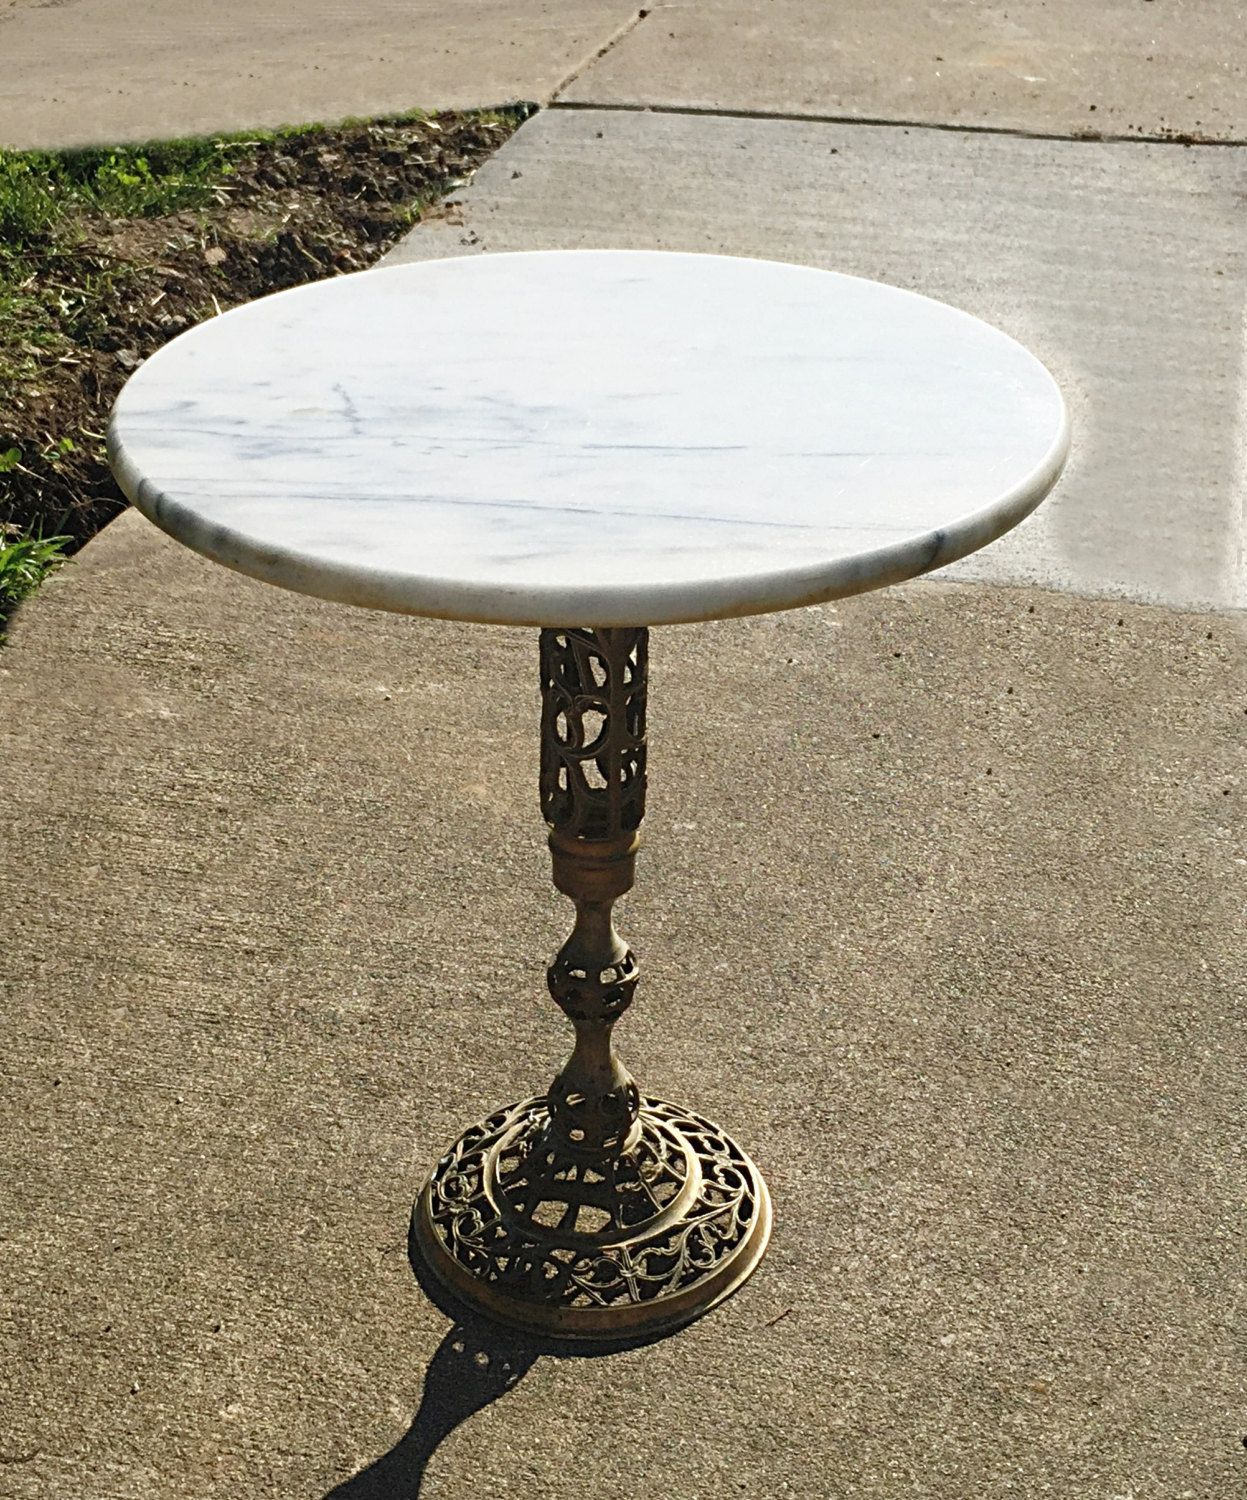 vintage regency marble top table solid brass base excellent side table plant stand hallway base cutout brass india italian marble top - Marble Top Table